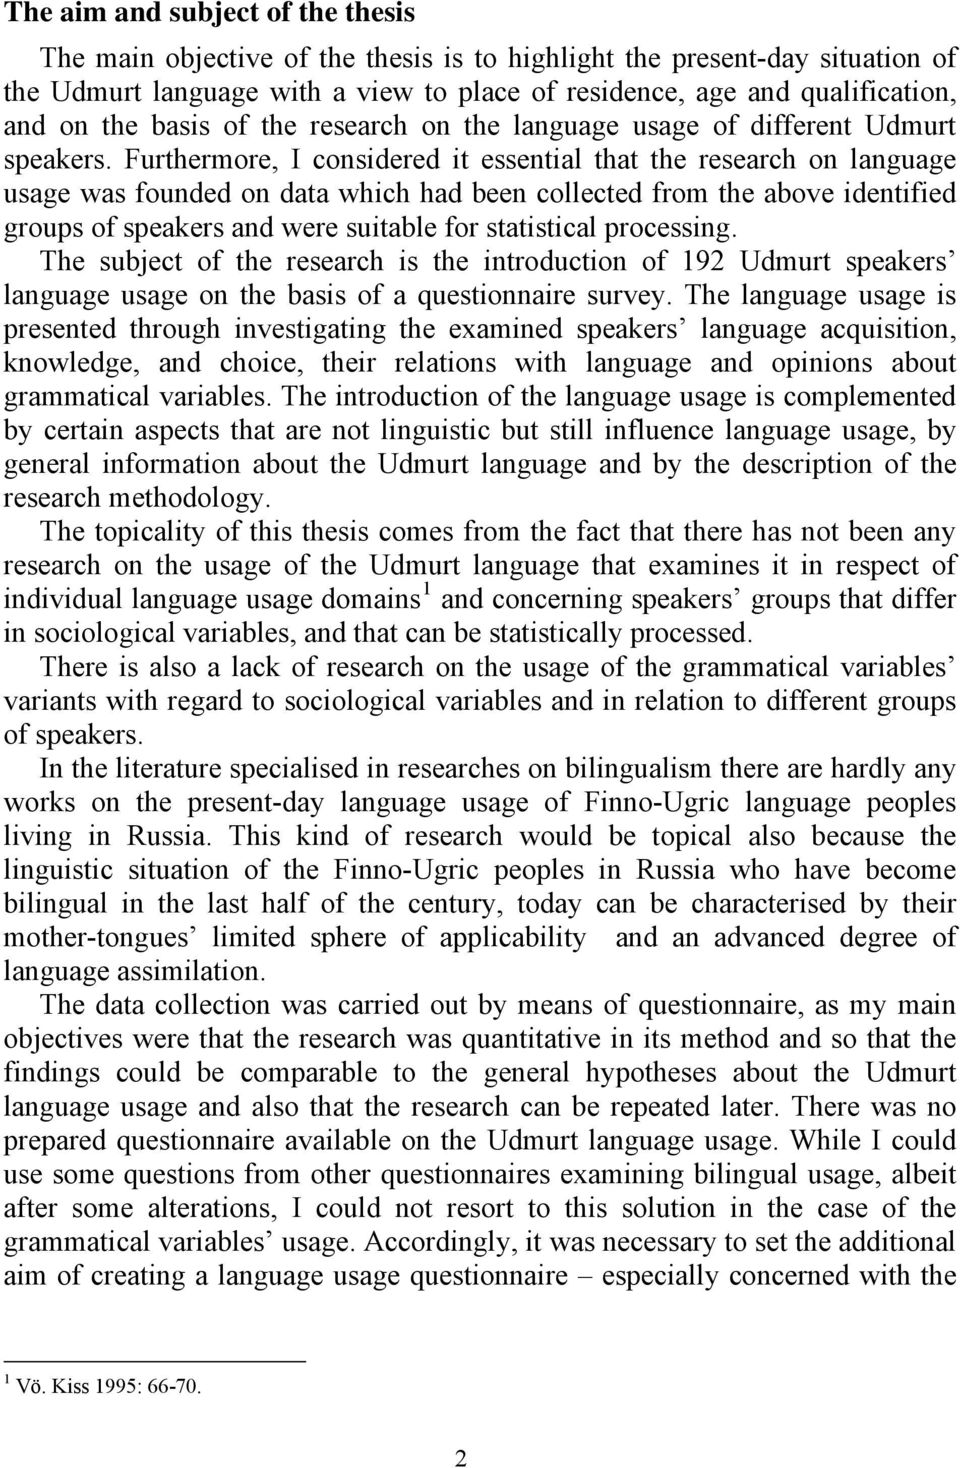 Furthermore, I considered it essential that the research on language usage was founded on data which had been collected from the above identified groups of speakers and were suitable for statistical